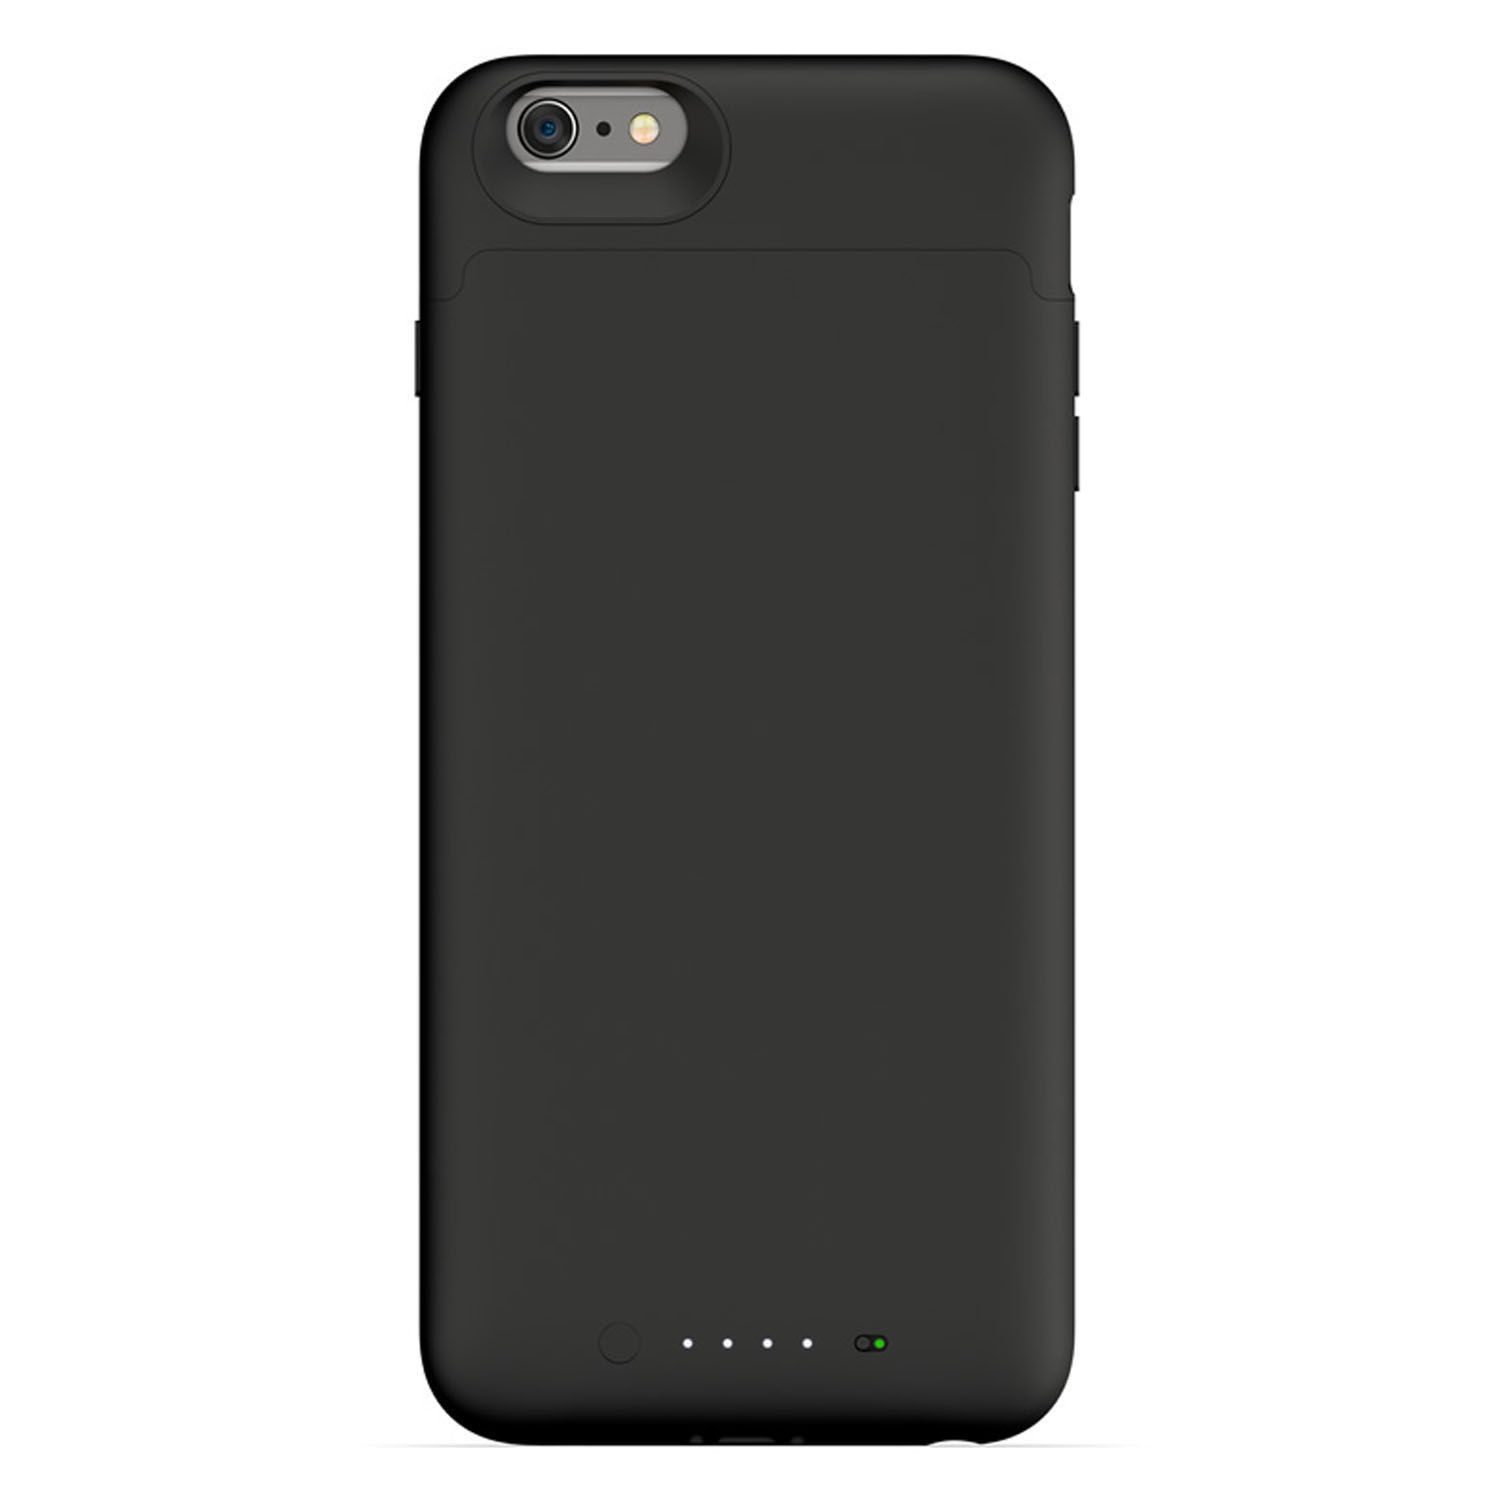 mophie iphone 6 plus juice pack battery caseIphone 6 Plus Nice Cases Cases For Iphone 6 Plus Cool Iphone 6 Cases For Sale Mophie 6 Juice Pack Plus Fashion #15